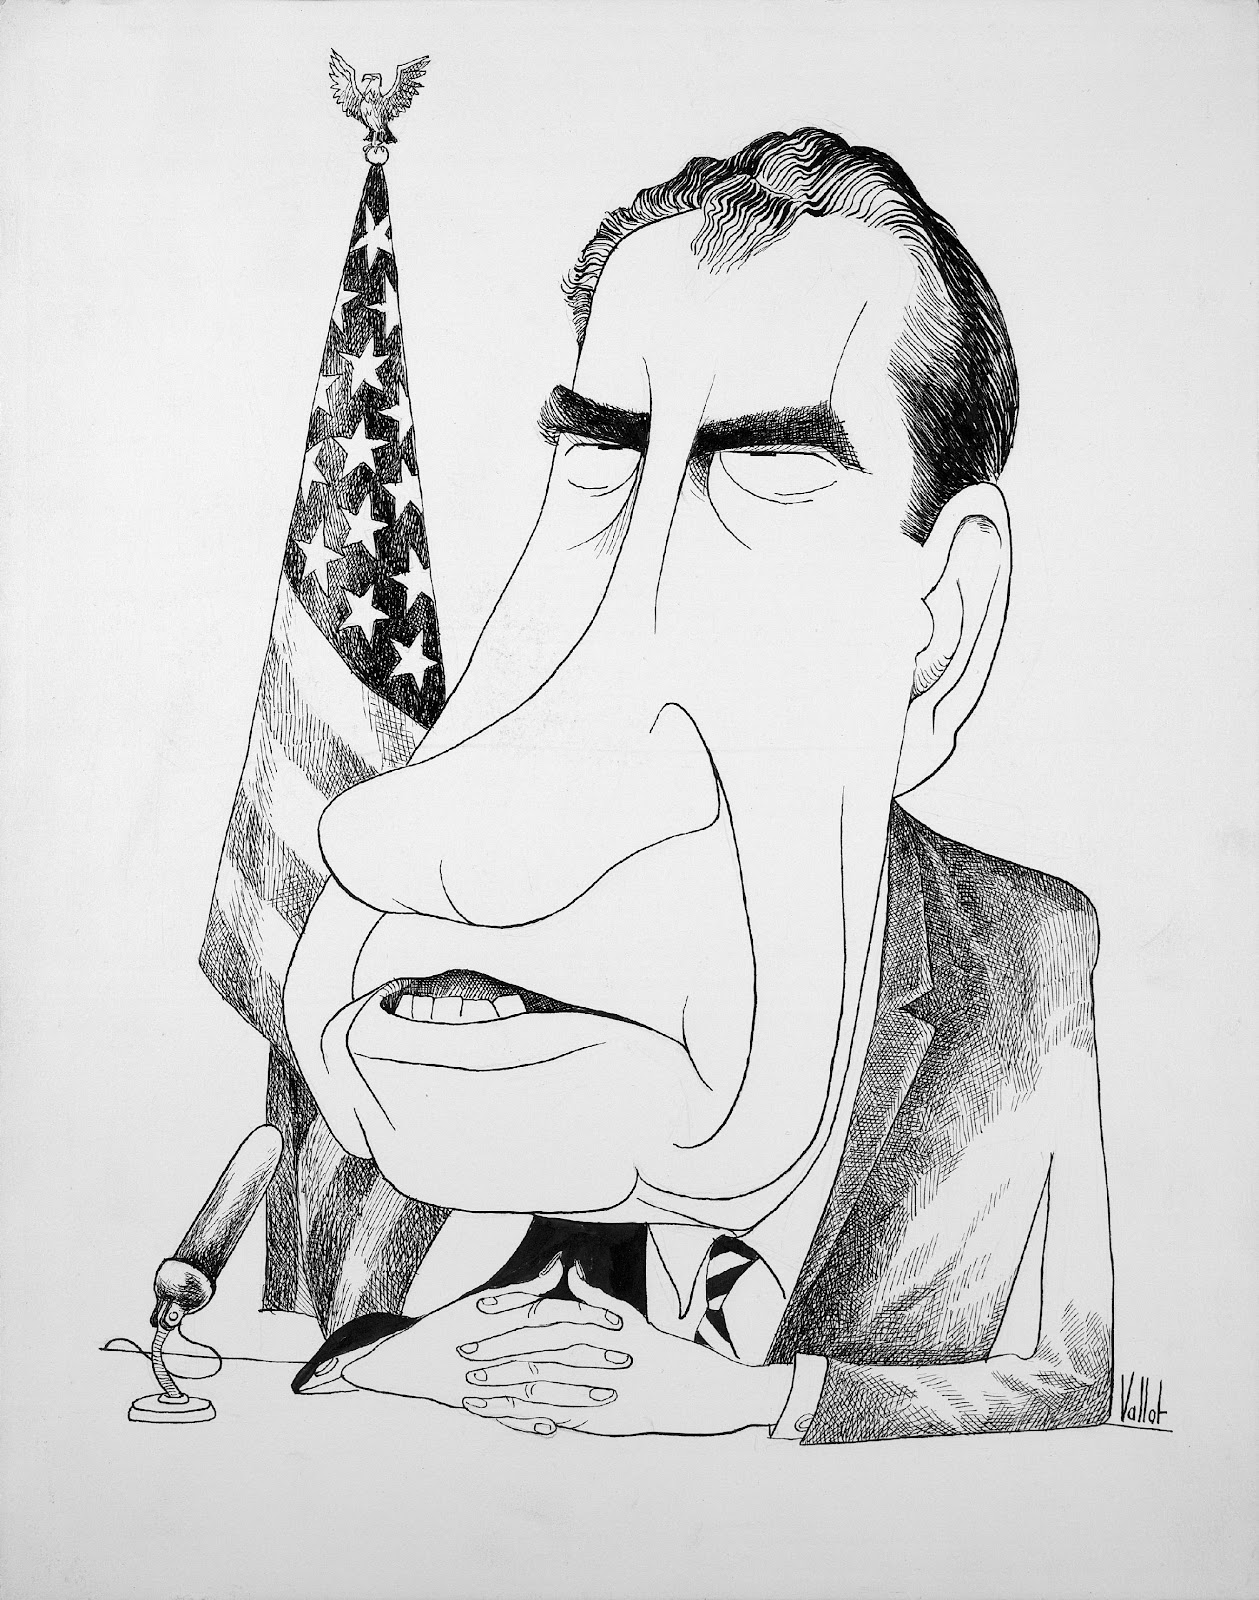 http://upload.wikimedia.org/wikipedia/commons/d/da/Richard_Nixon_by_Edmund_S._Valtman_ppmsc.07955.jpg